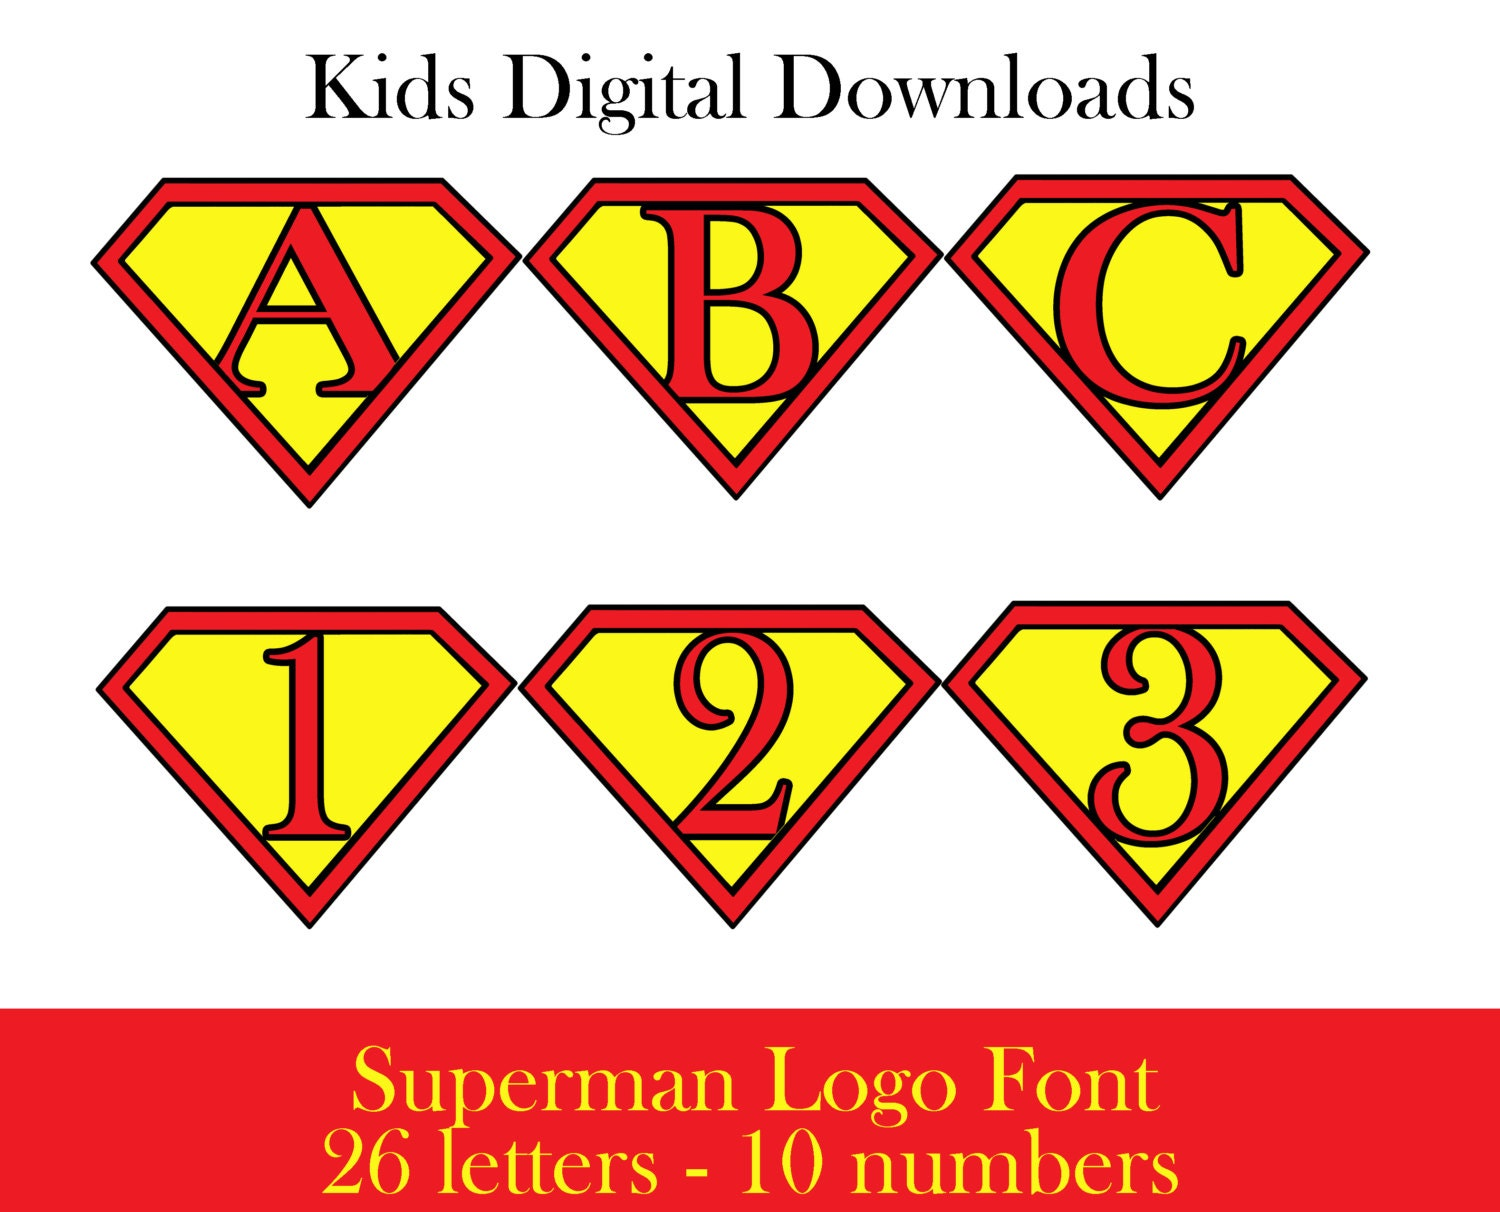 Top logo design create superman logo with different letters top logo design create superman logo with different letters superman logo font superman letters by voltagebd Image collections